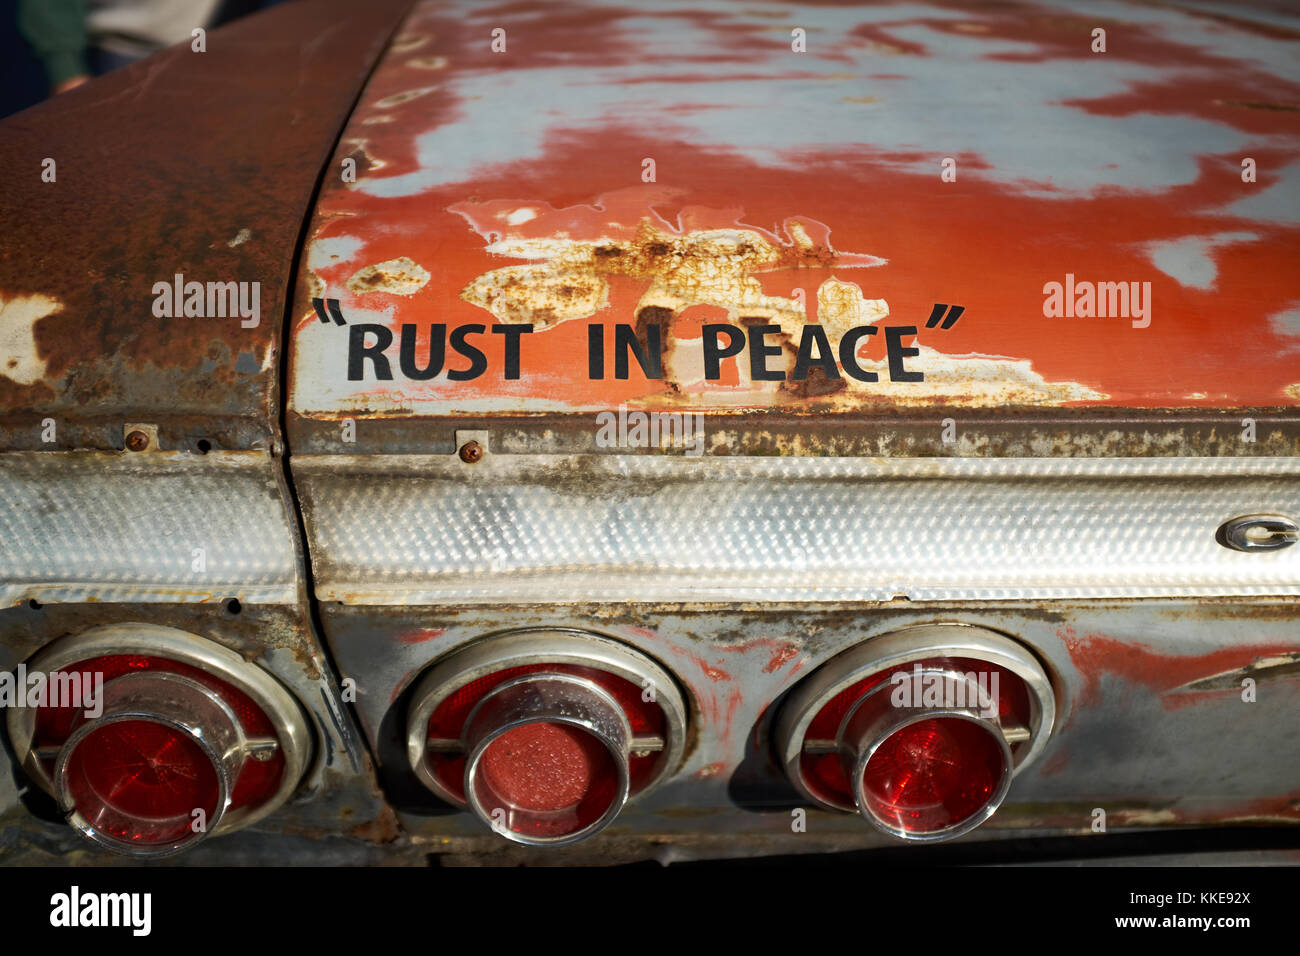 Fun message on an old rusty car - Rust In Peace - on the rear of a vintage Chevrolet with advanced corrosion Stock Photo